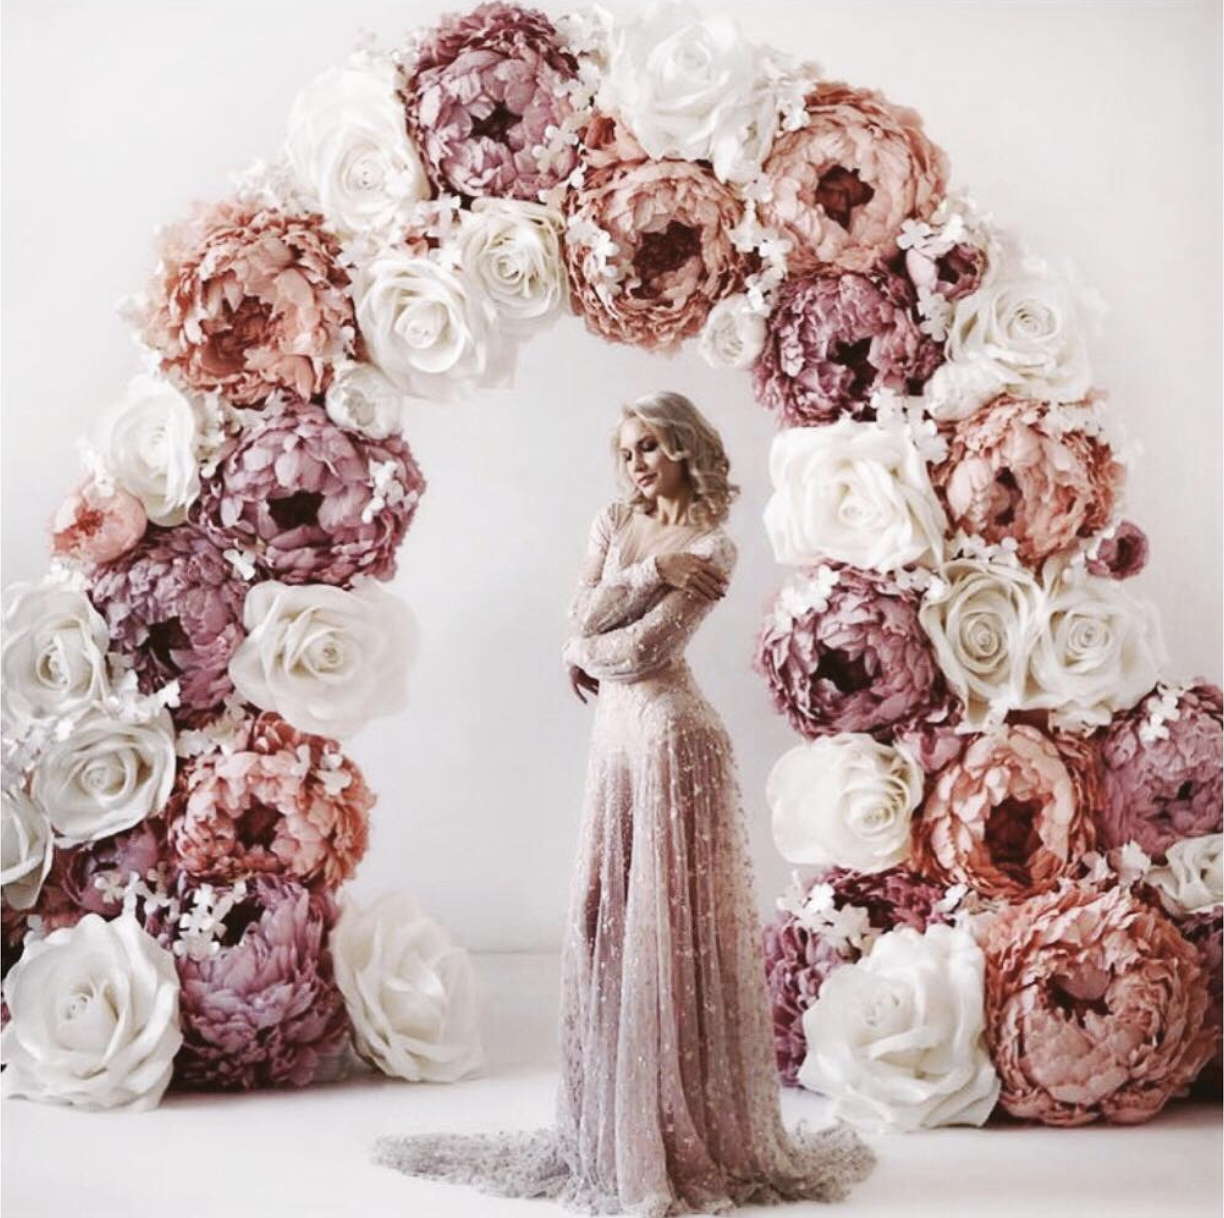 Wedding Arches With Flowers: 10 Best Wedding Arch Styles Of All Time